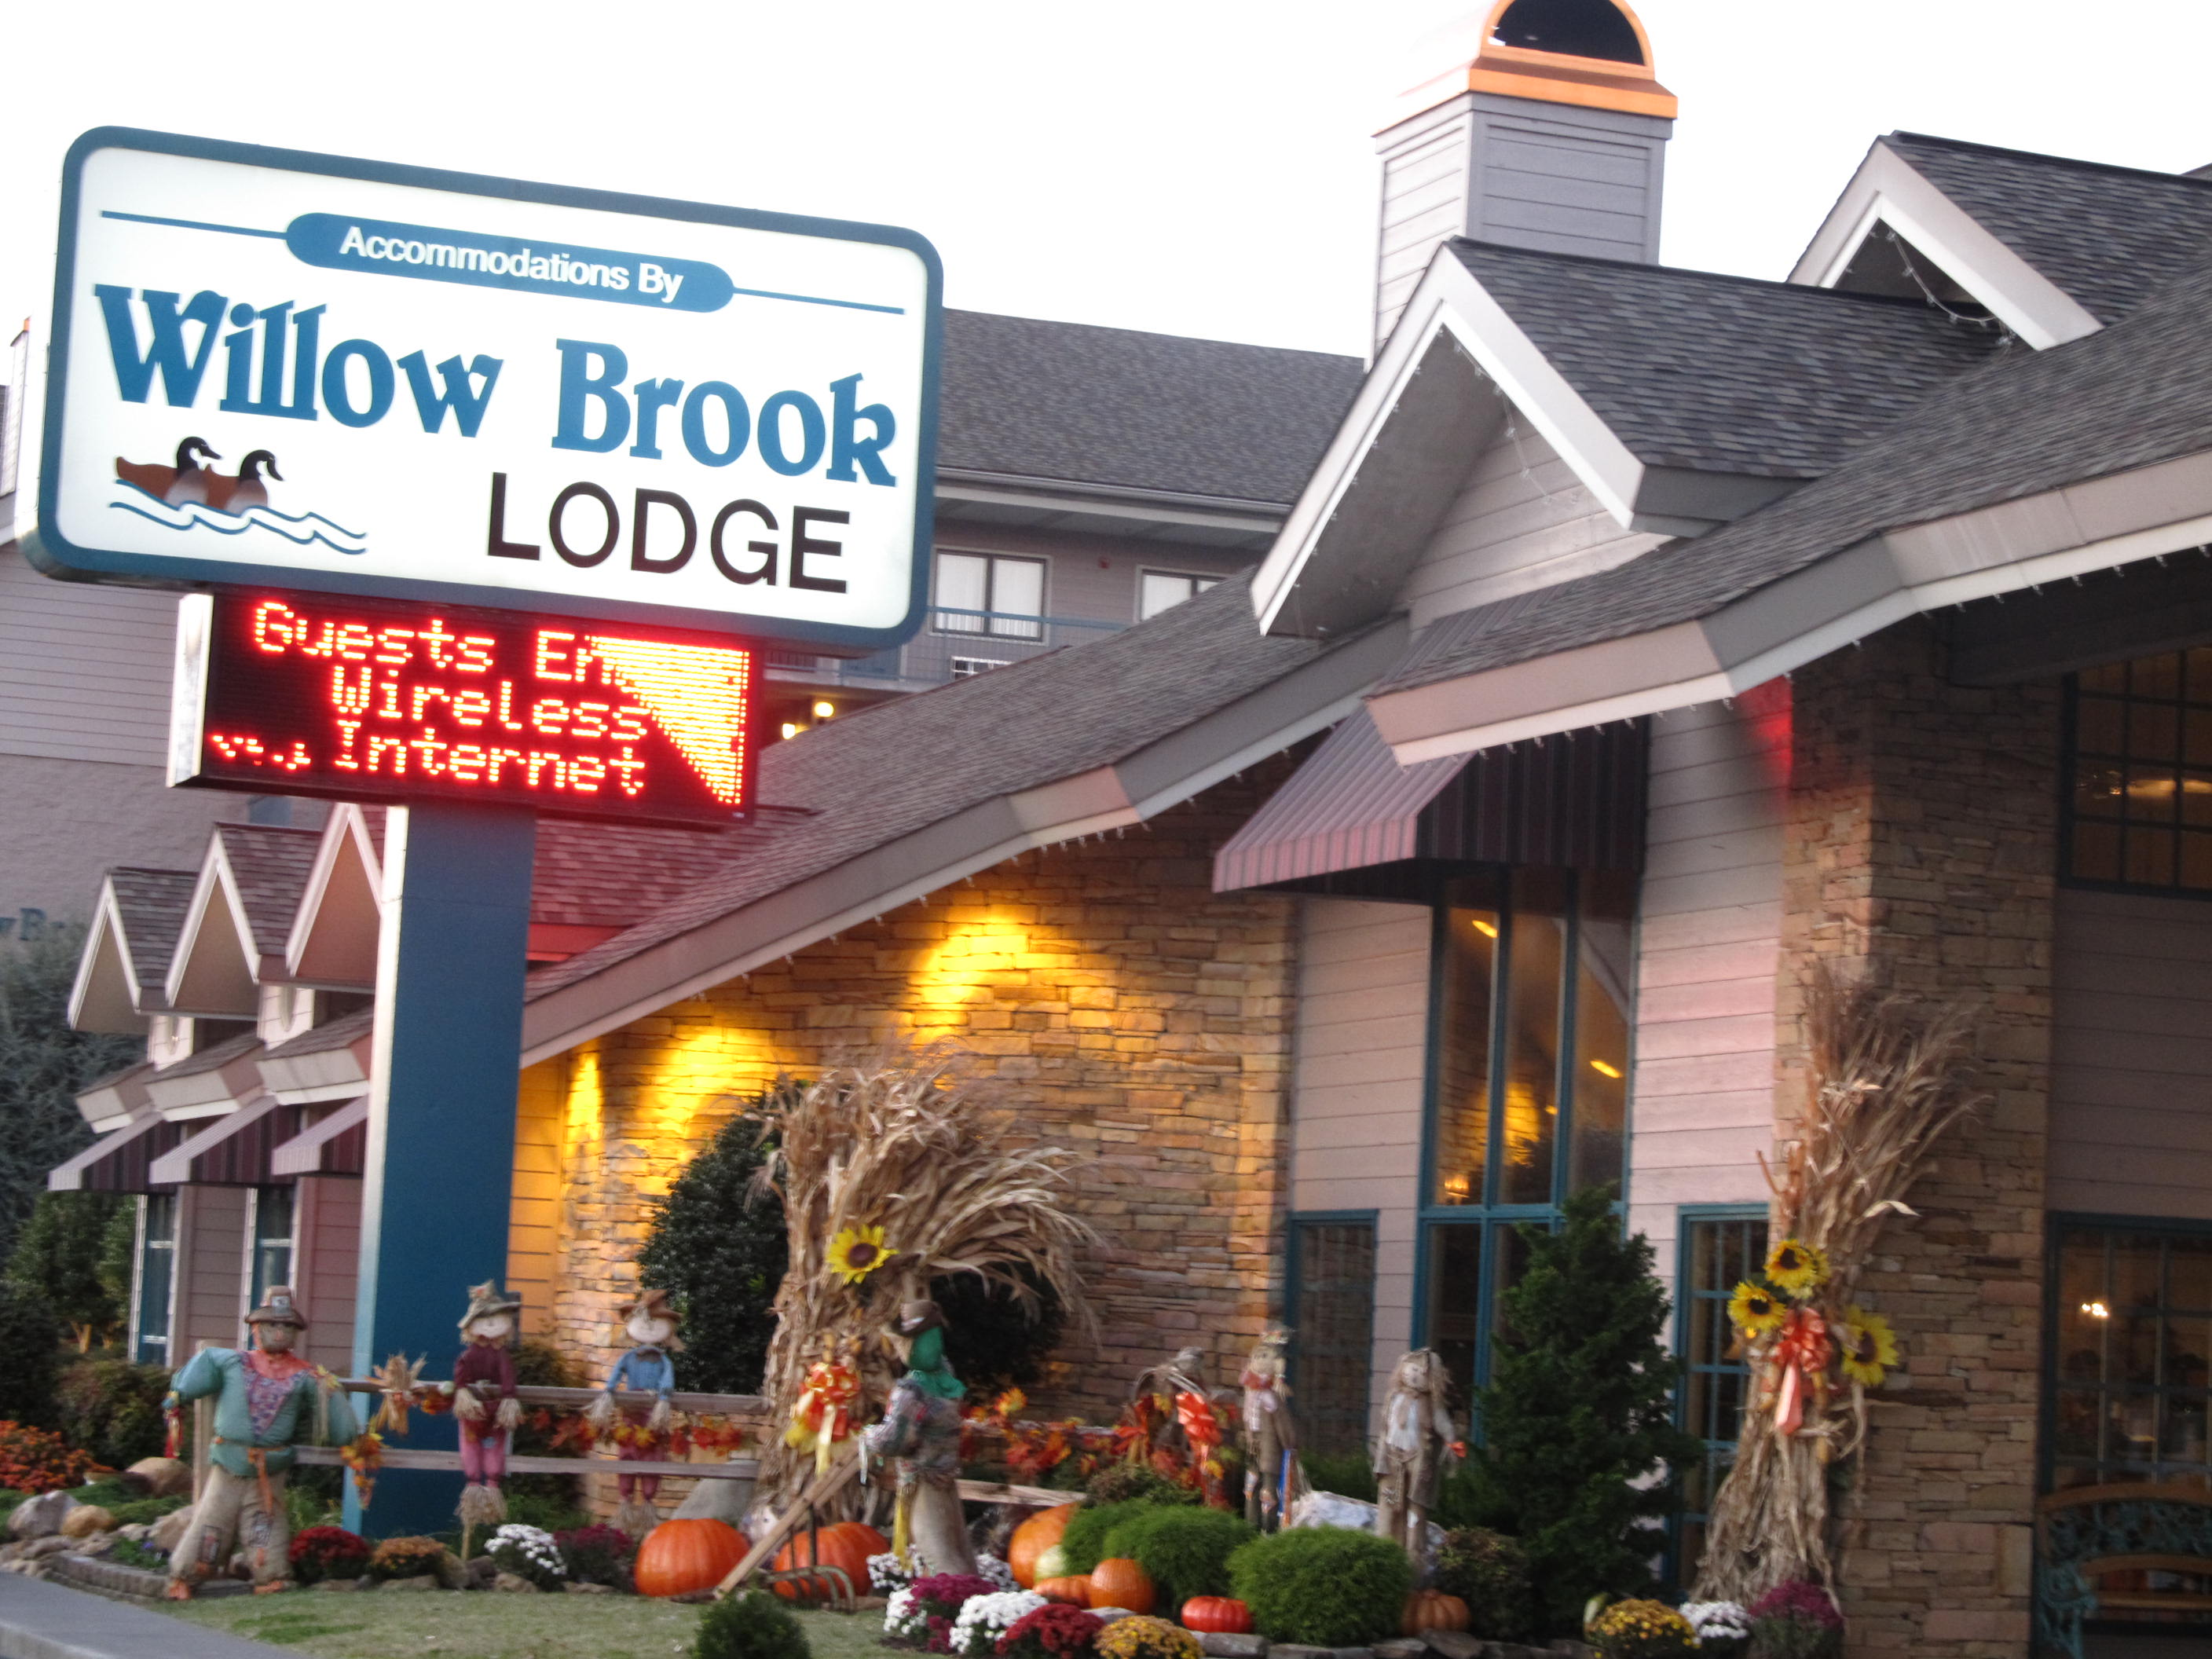 Willow Brook Lodge is the perfect for Christian Events,convention stays, and vacations.